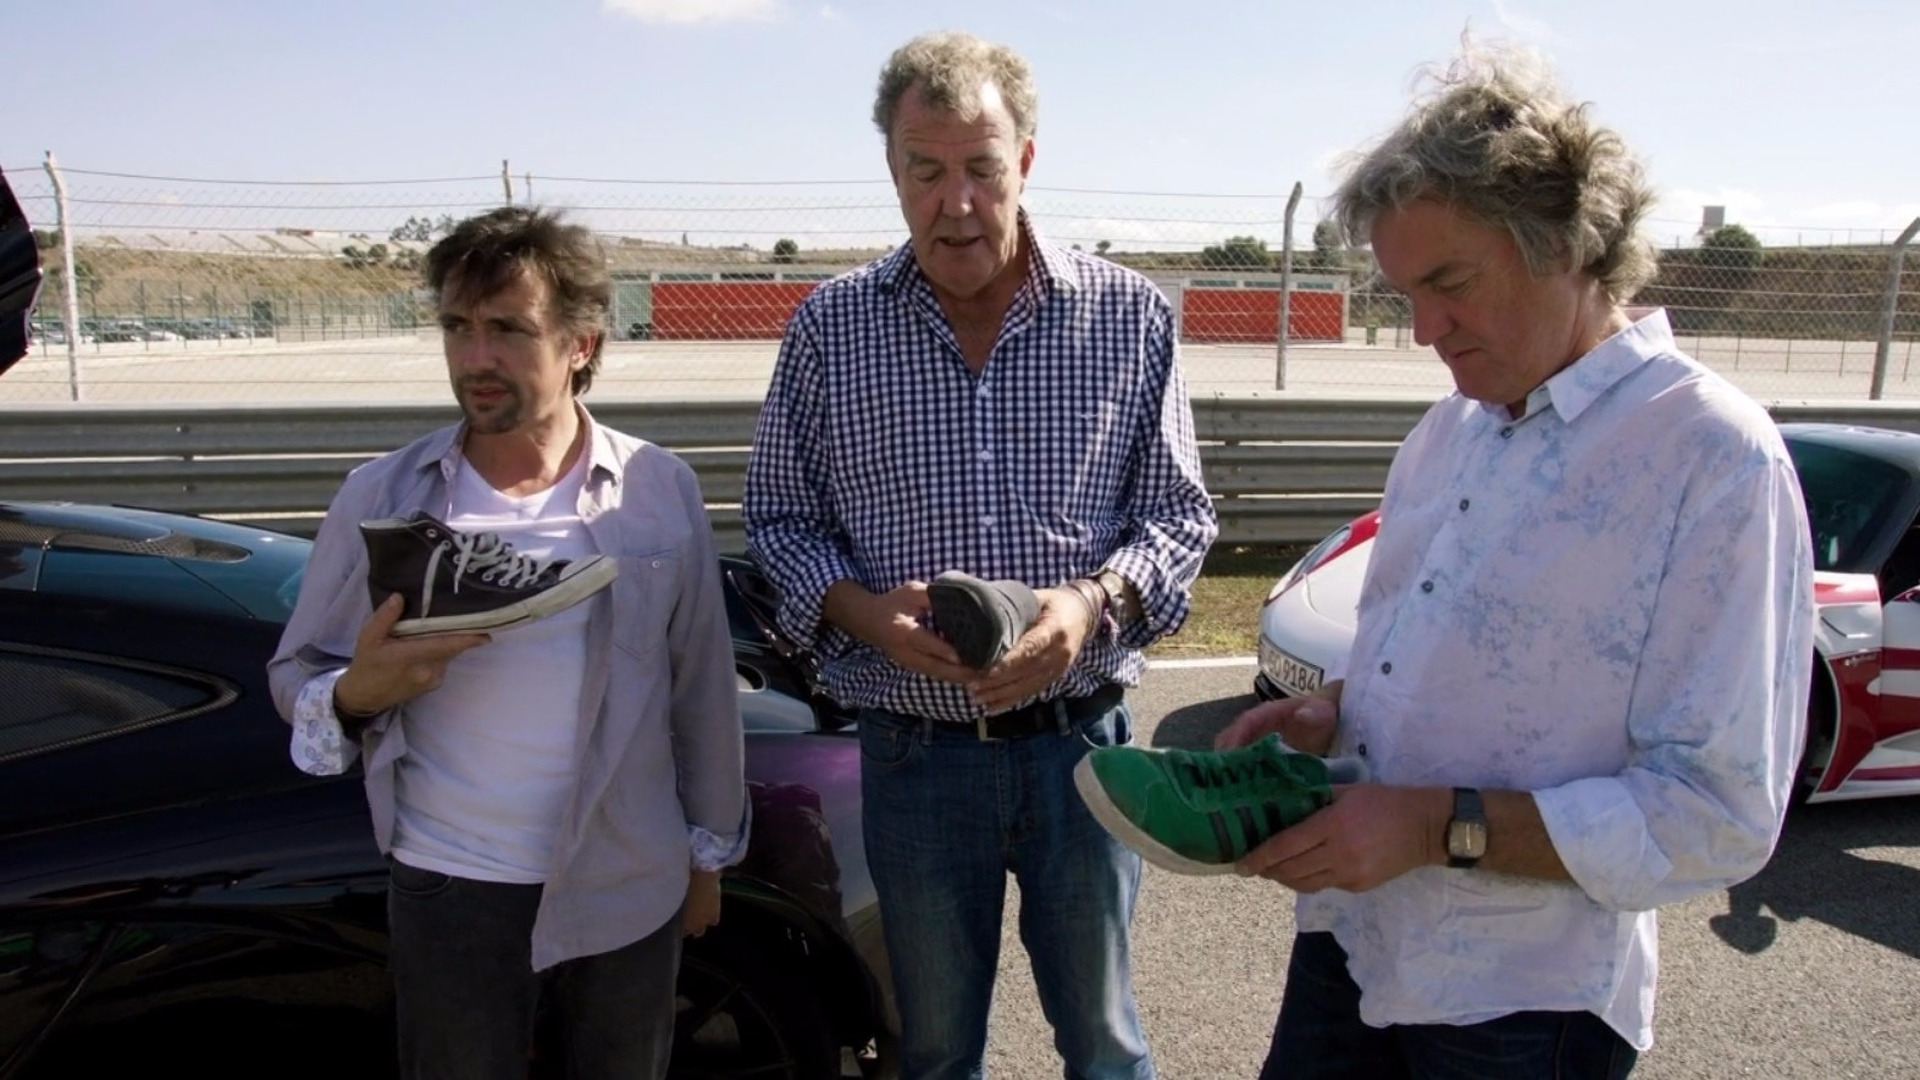 Top 19 The Grand Tour spoilers – Episode 1 edition